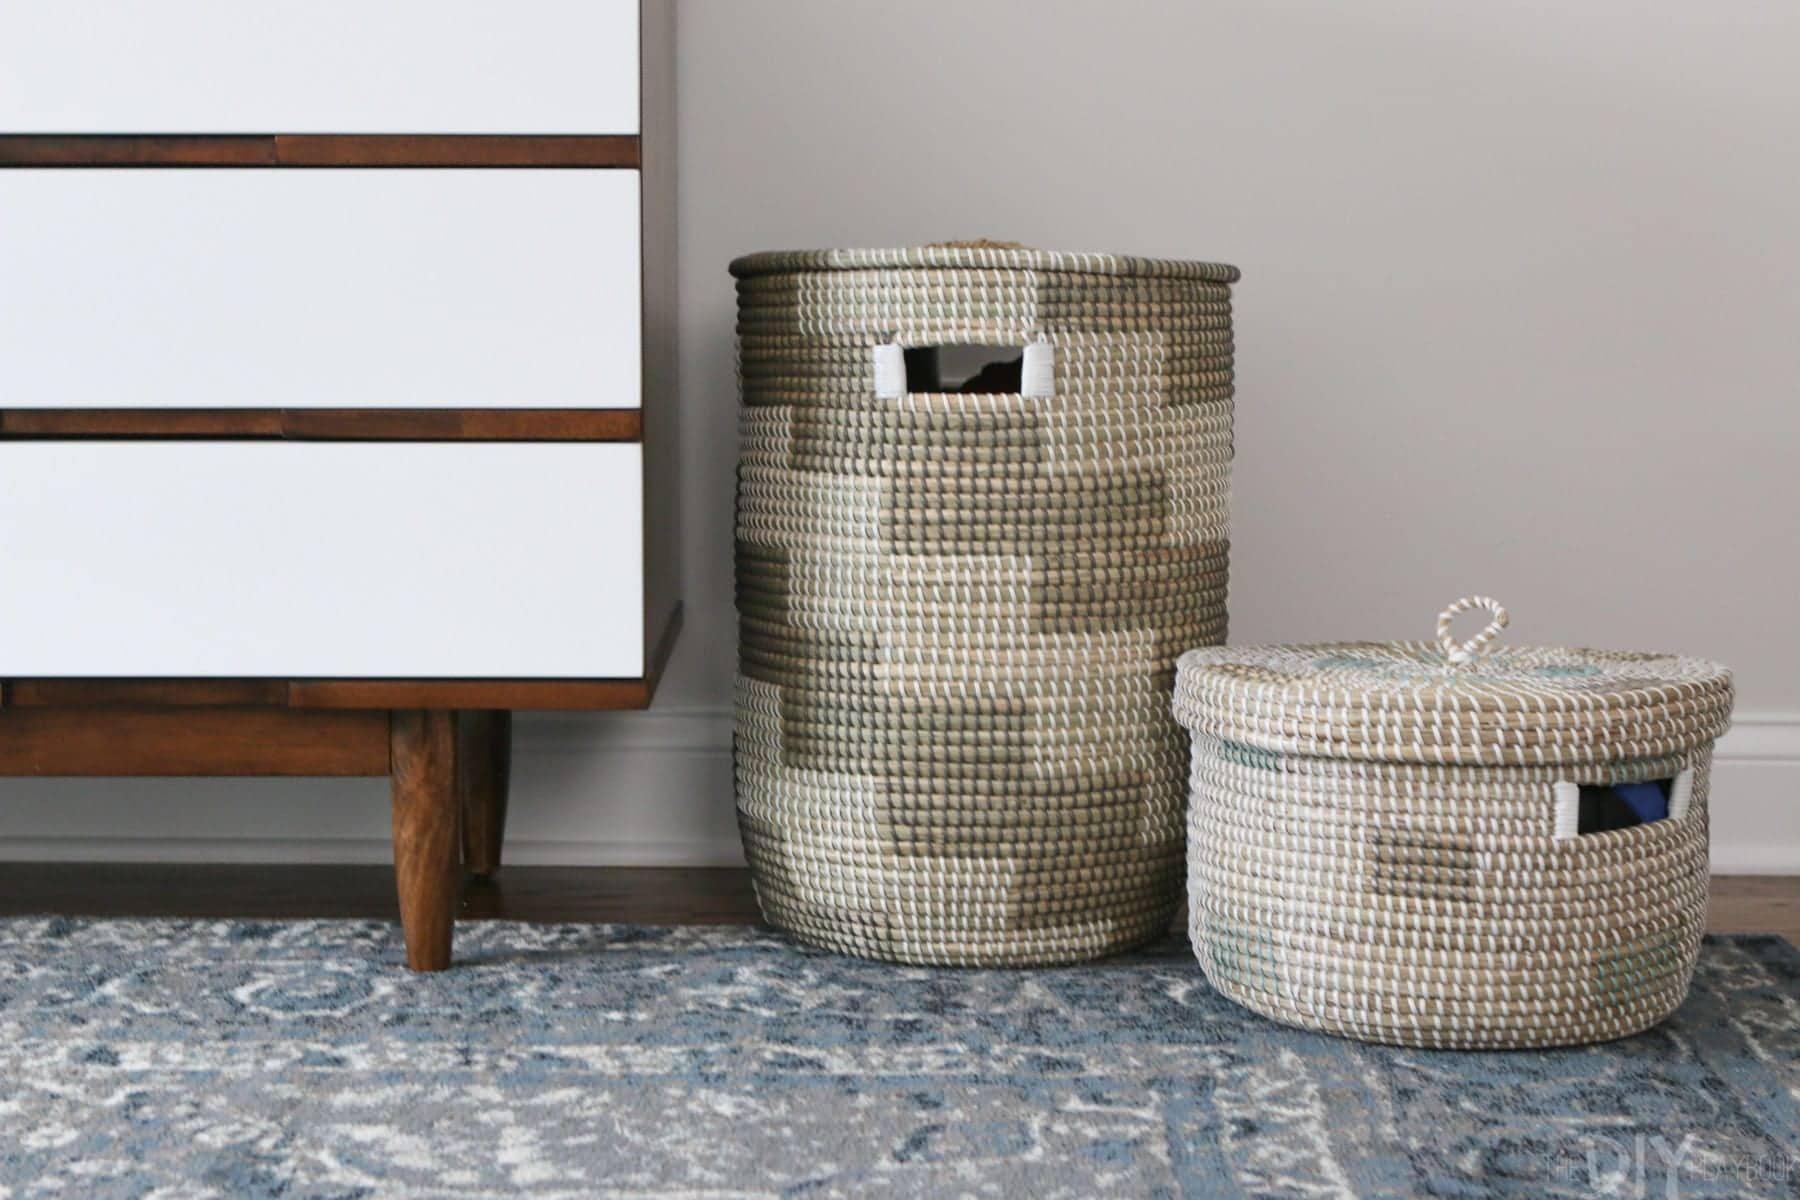 Nursery Baskets to Offer Hidden Storage